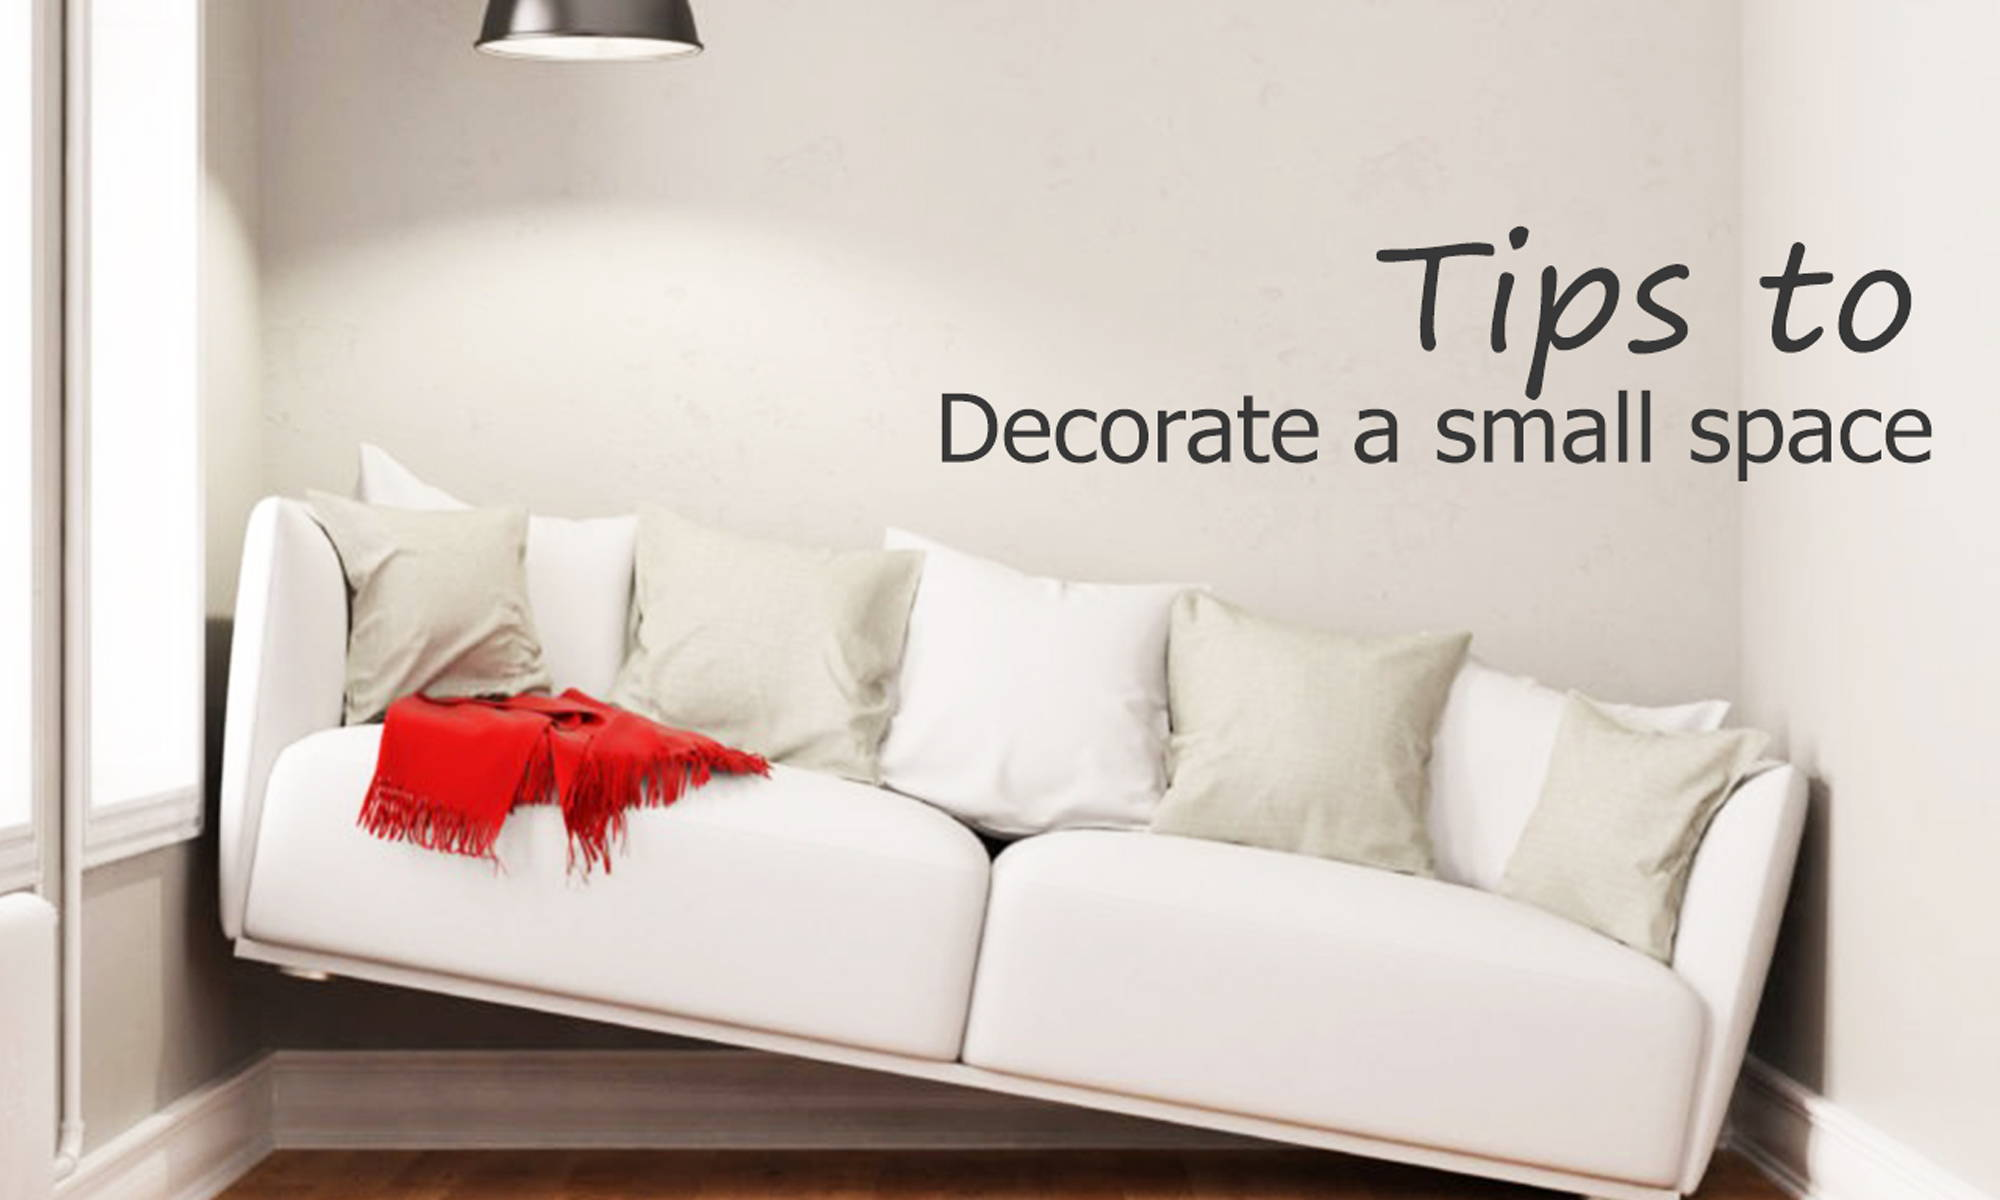 Decorate a small space on a budget